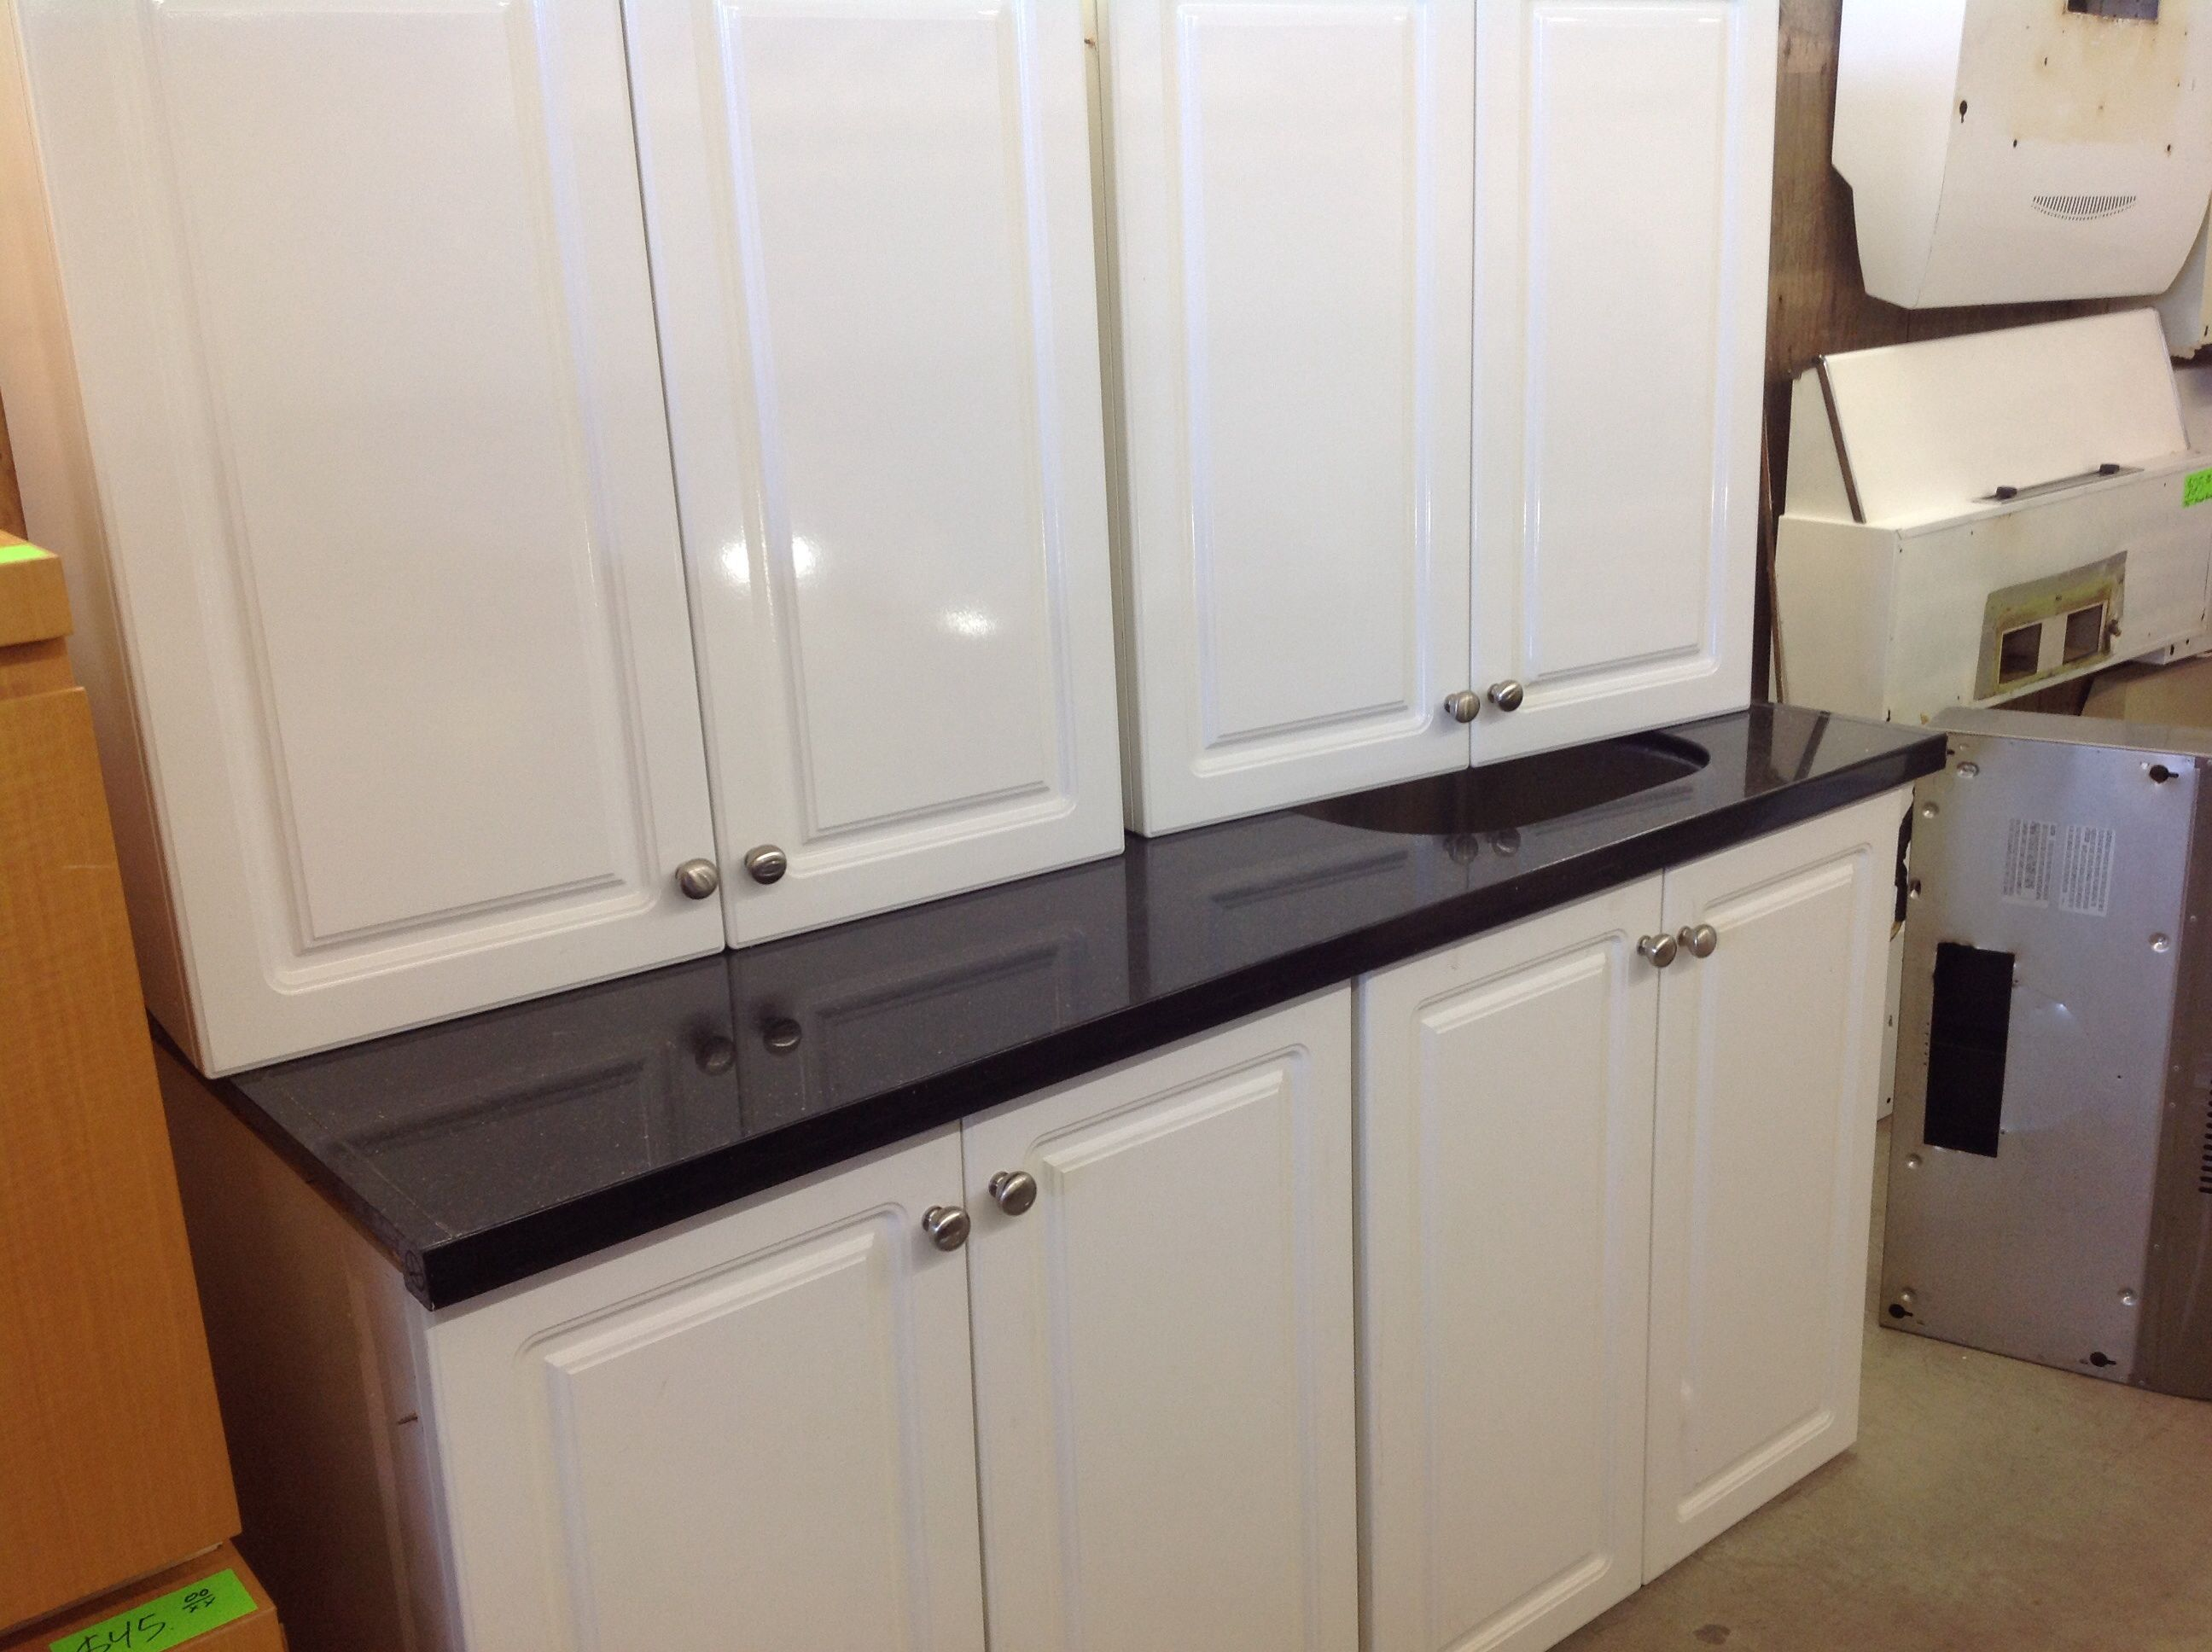 Used Kitchen Sets Chilliwack New And Used Building Materials Inc Kitchen Cabinet Doors Kitchen Sets Window Handles